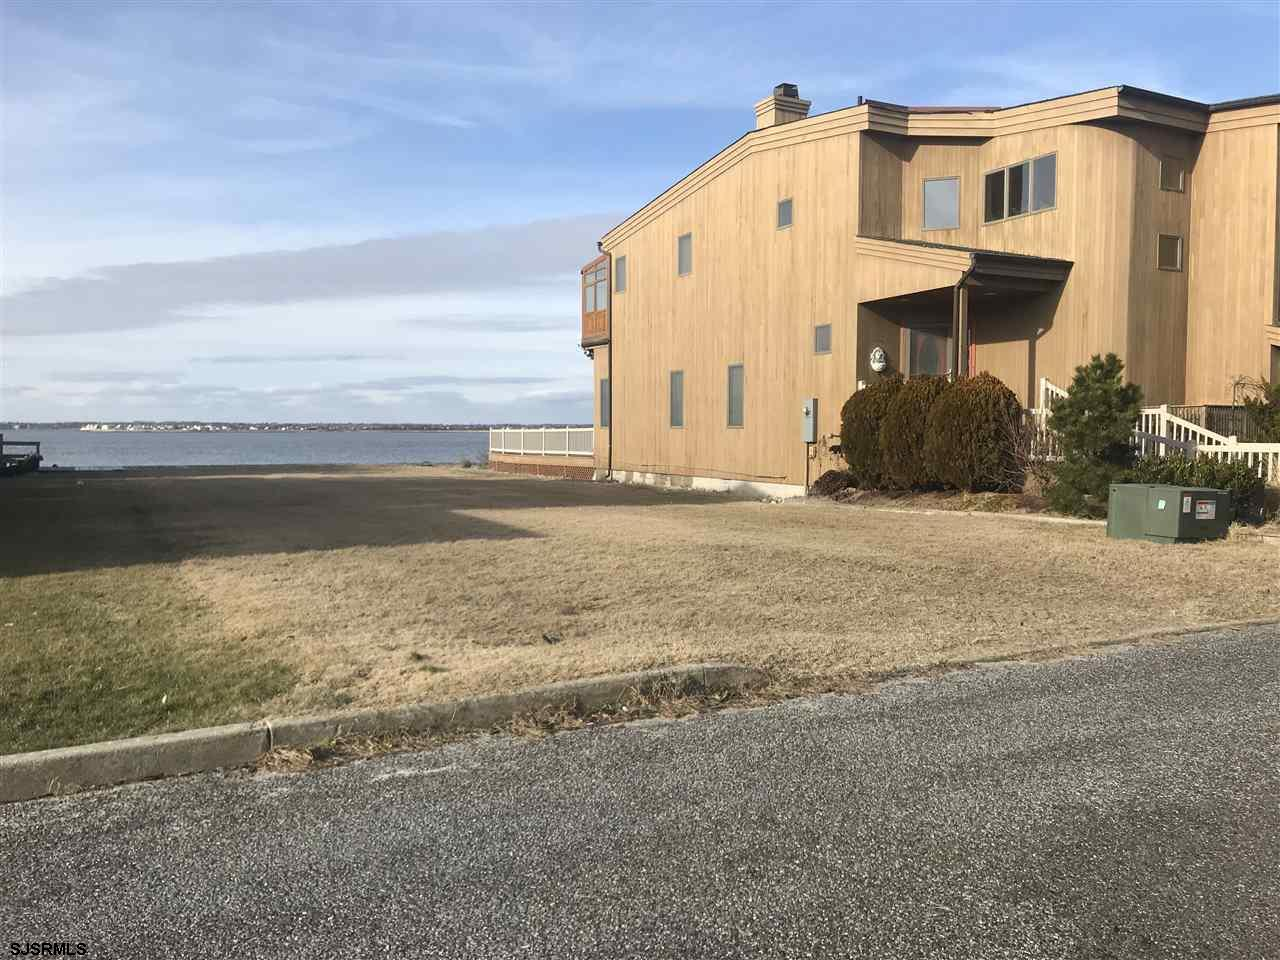 4 BRITTANY DR, OCEAN CITY, NJ 08226